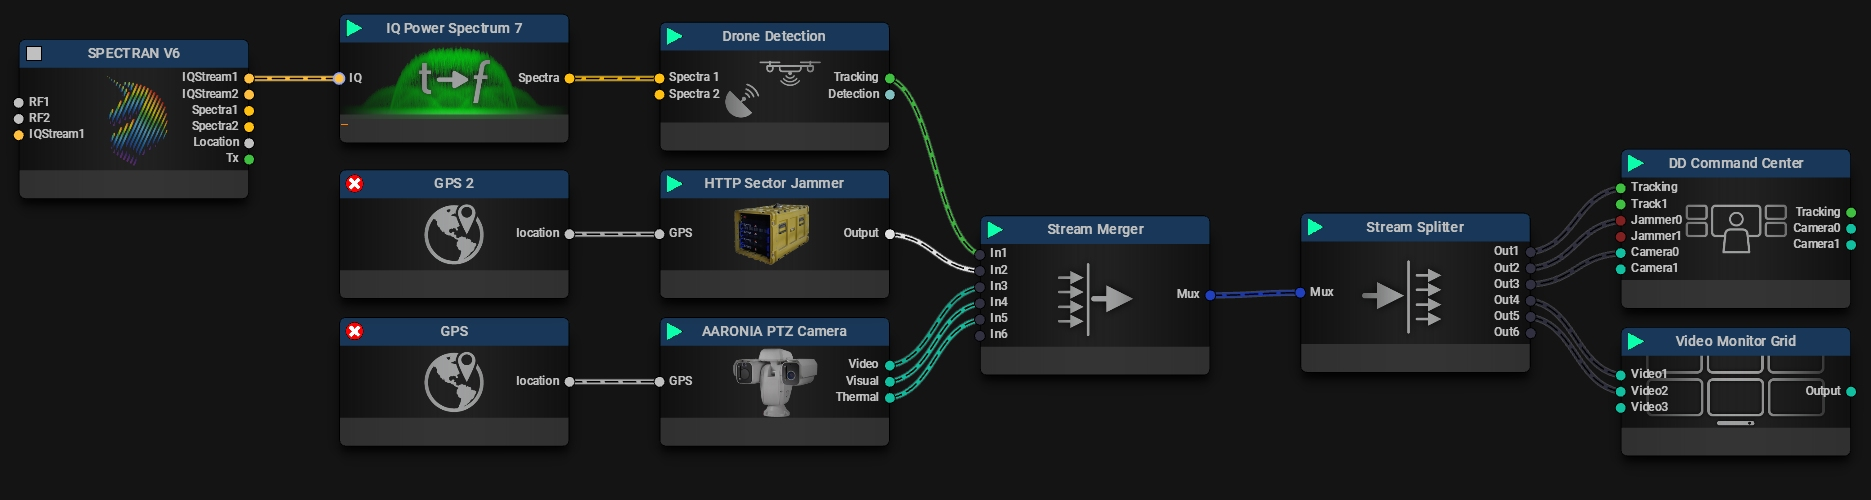 Drone Detection Software Setup with RF Detector, Radar, Jammer an Camera